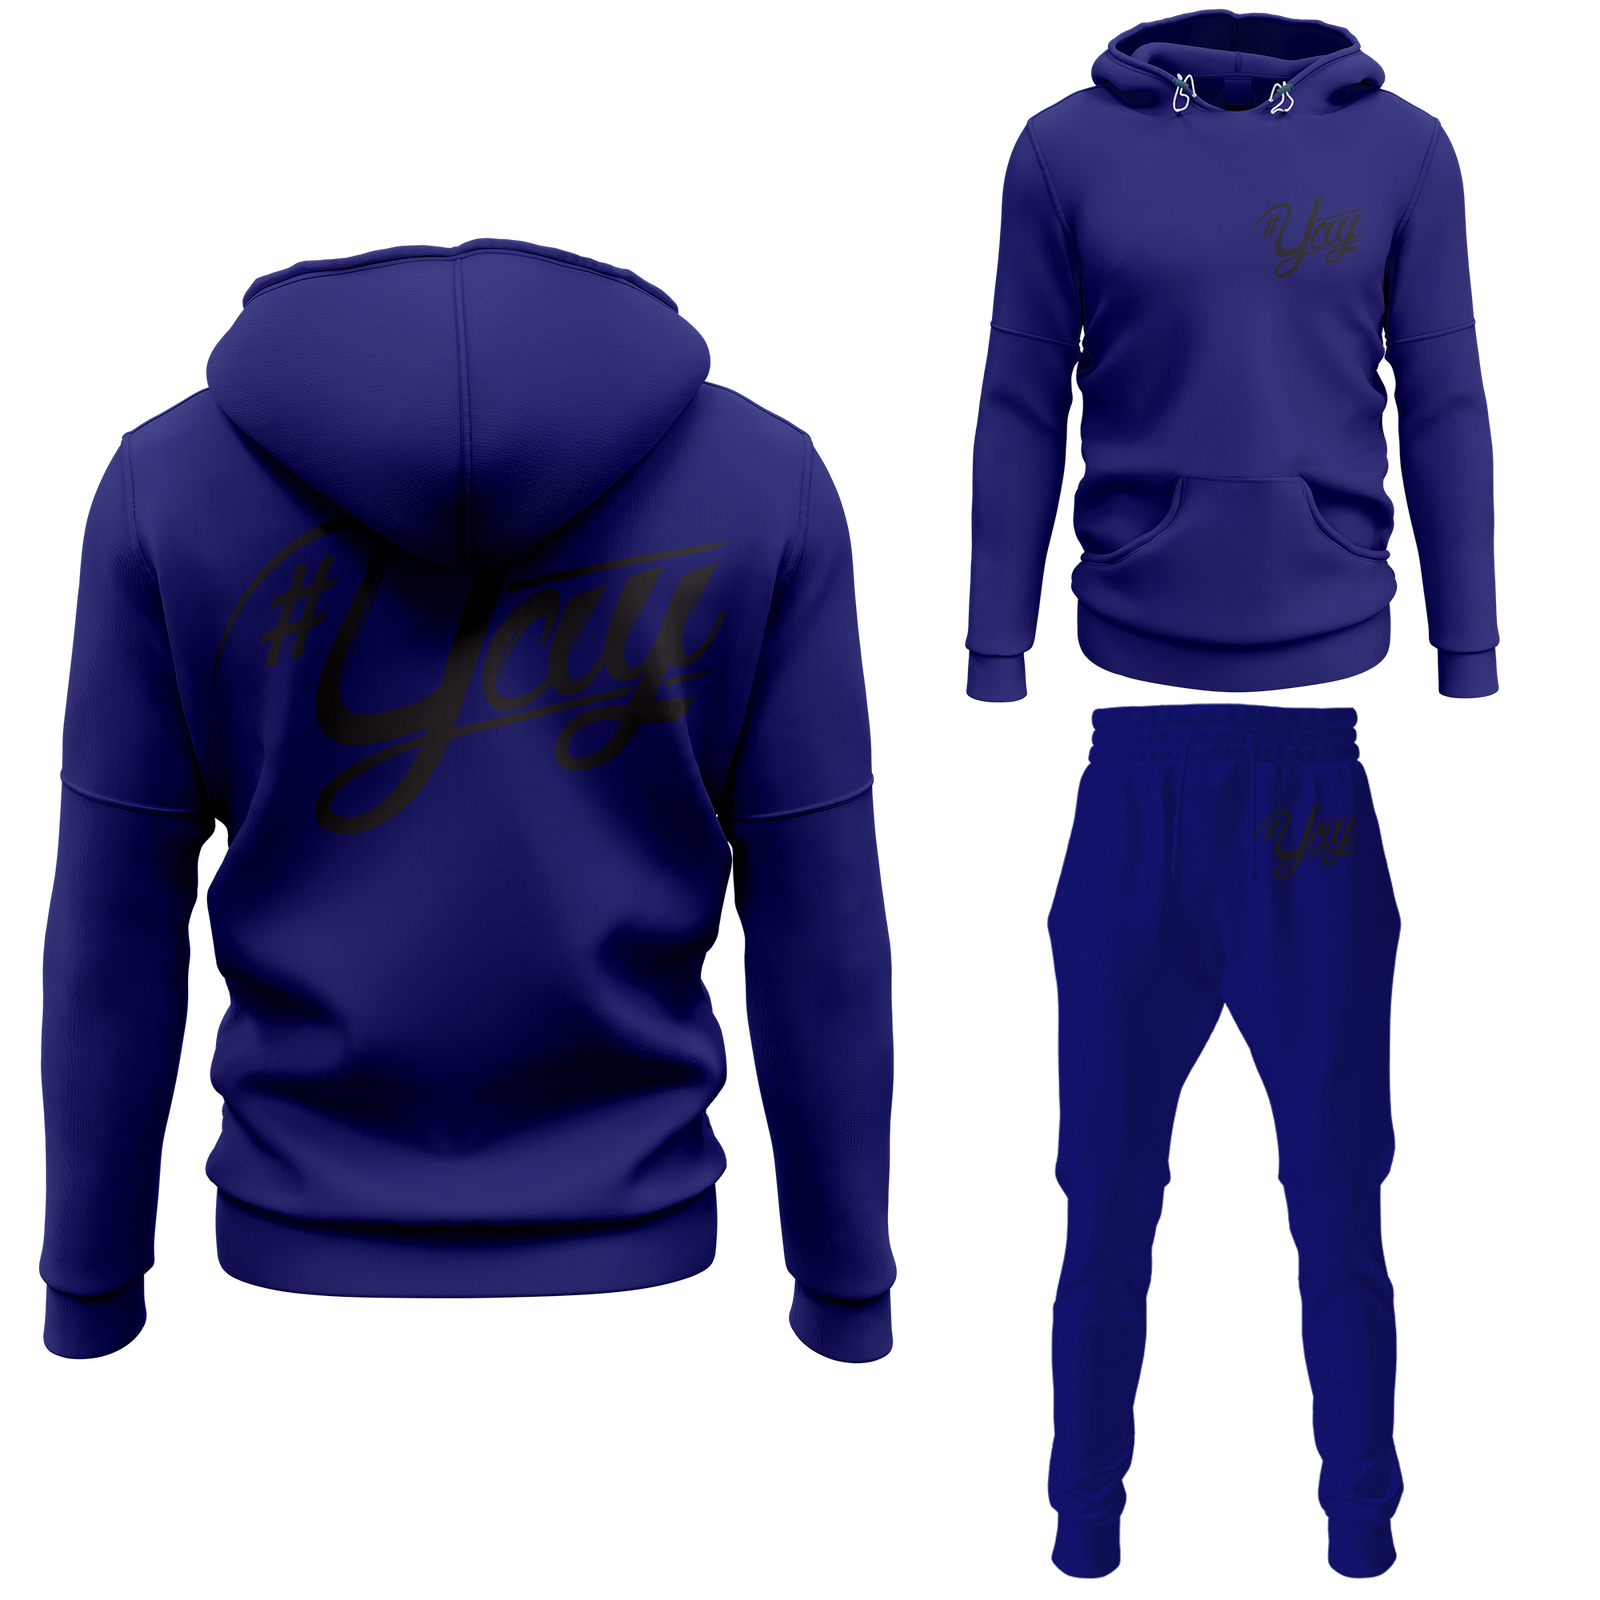 Mens Classic Yay Pullover Sweatsuits